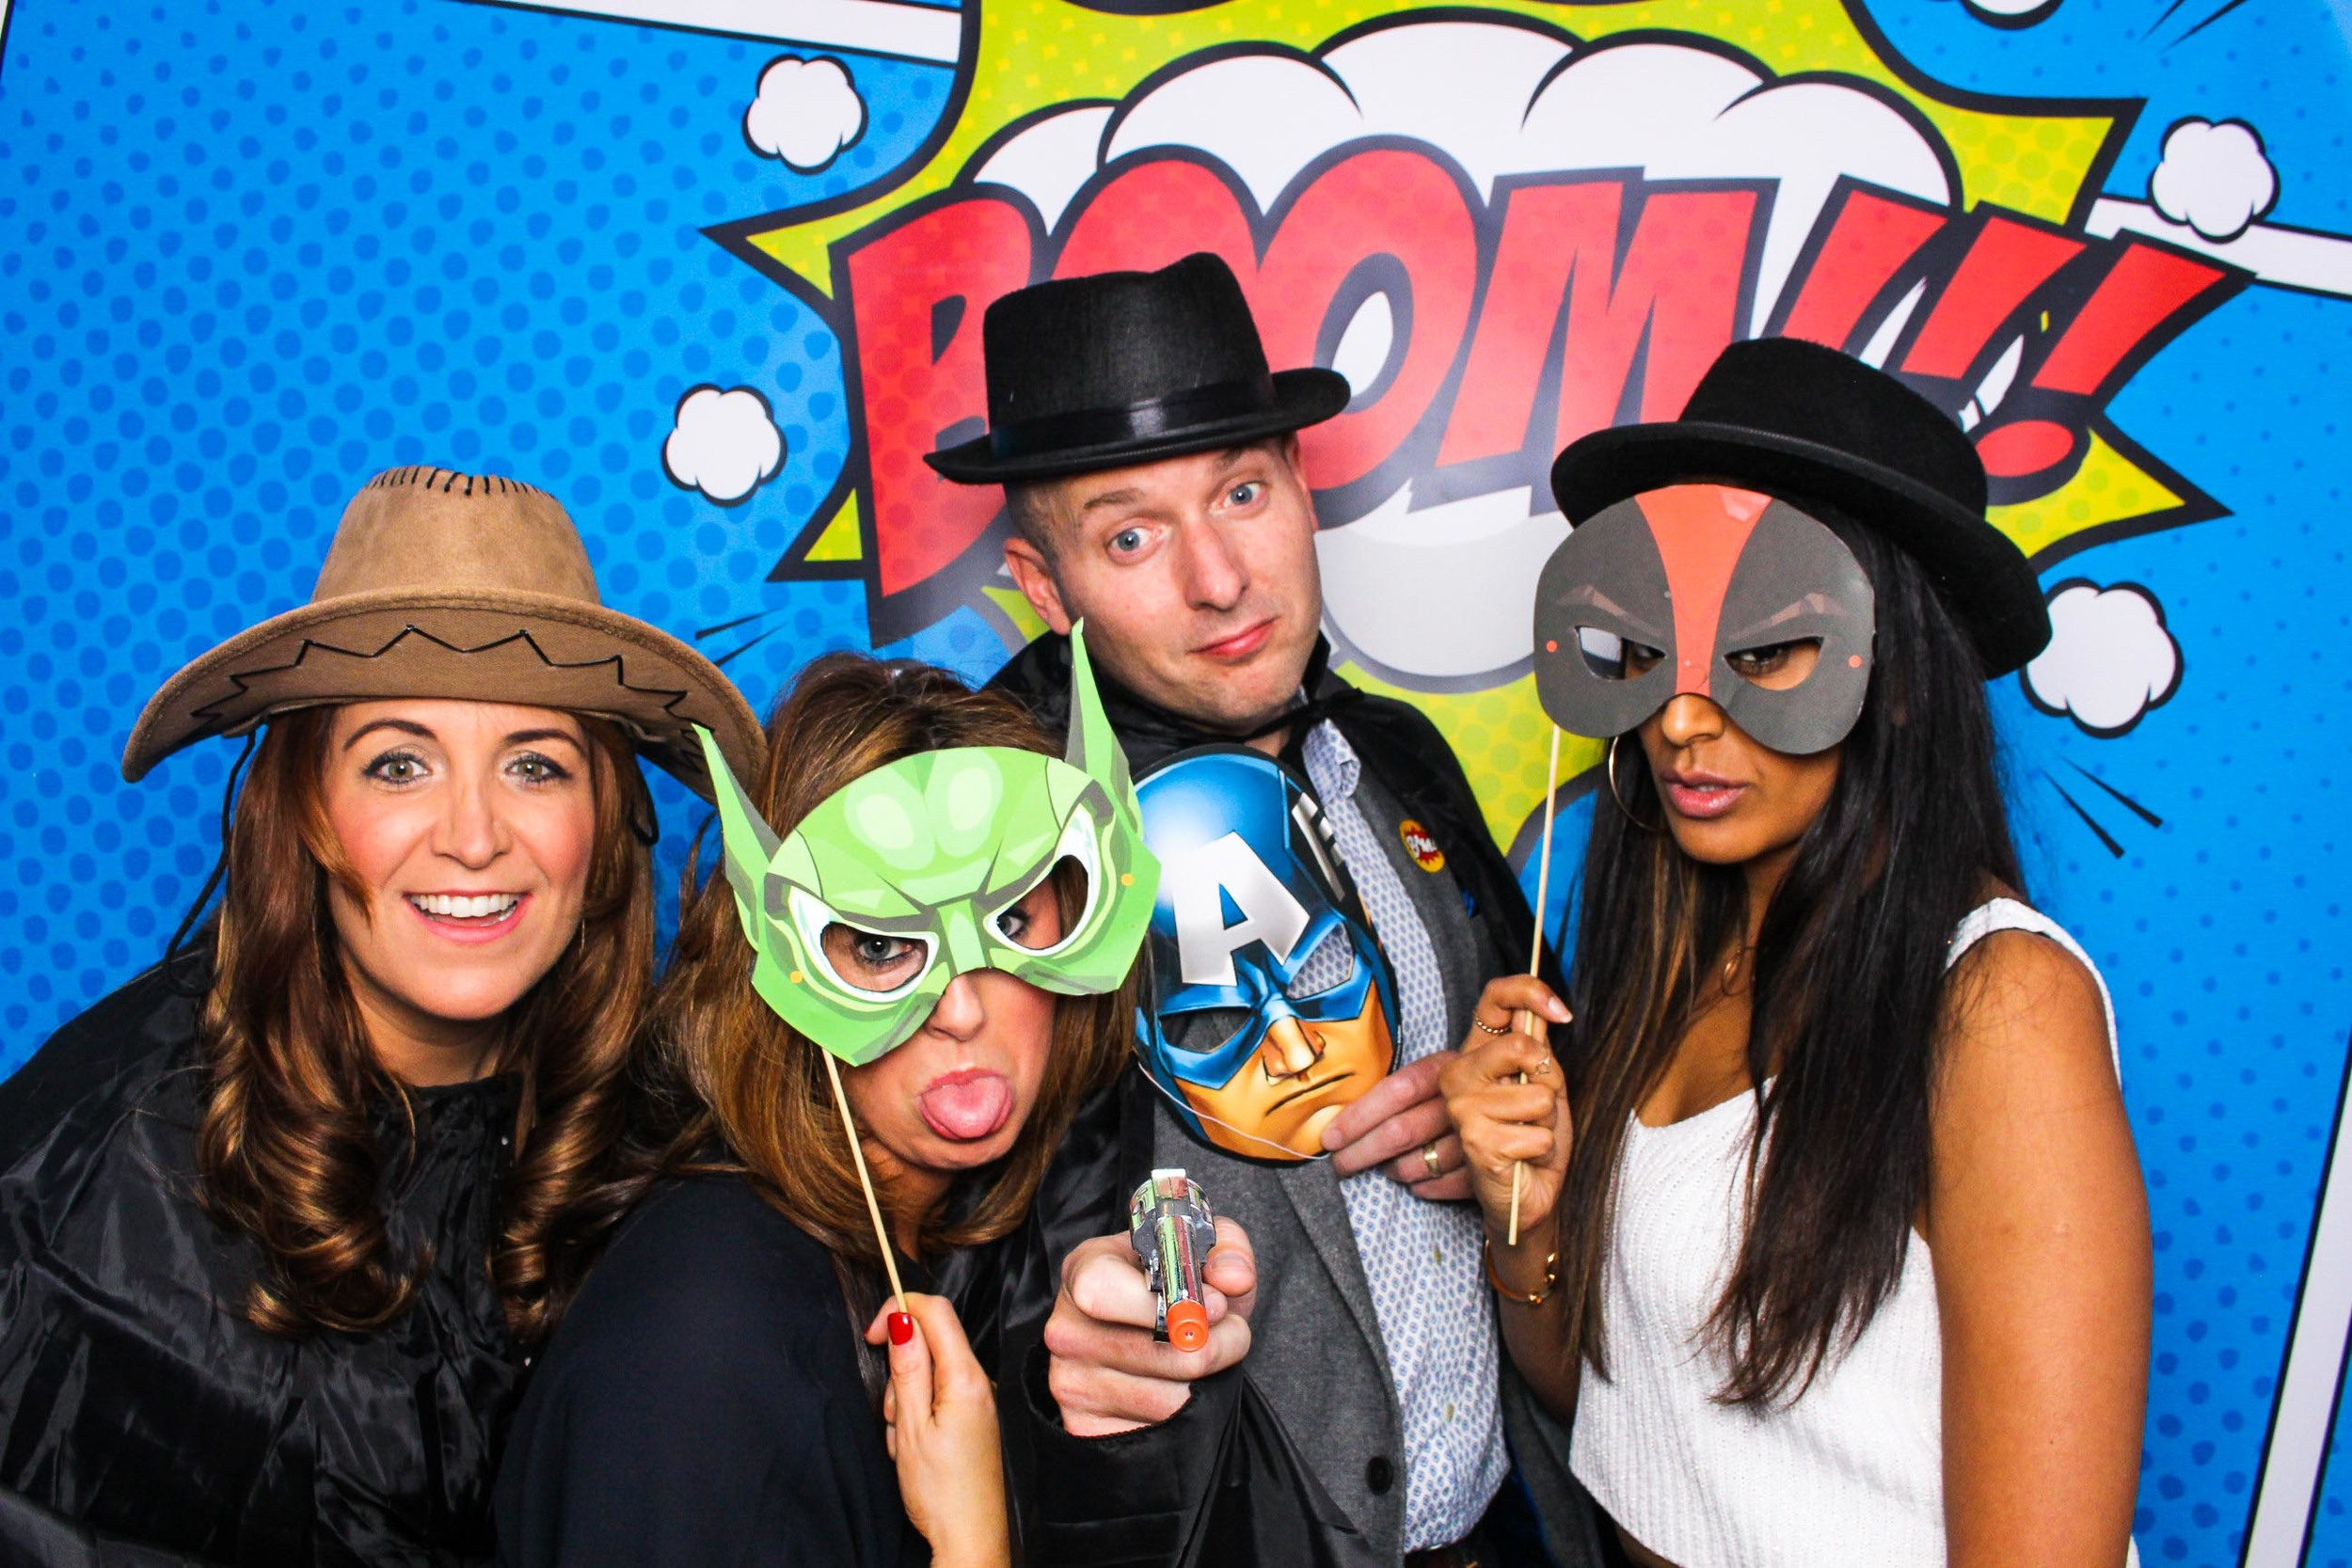 Fotoauto Photo Booth Hire - Shop Direct-263.jpg